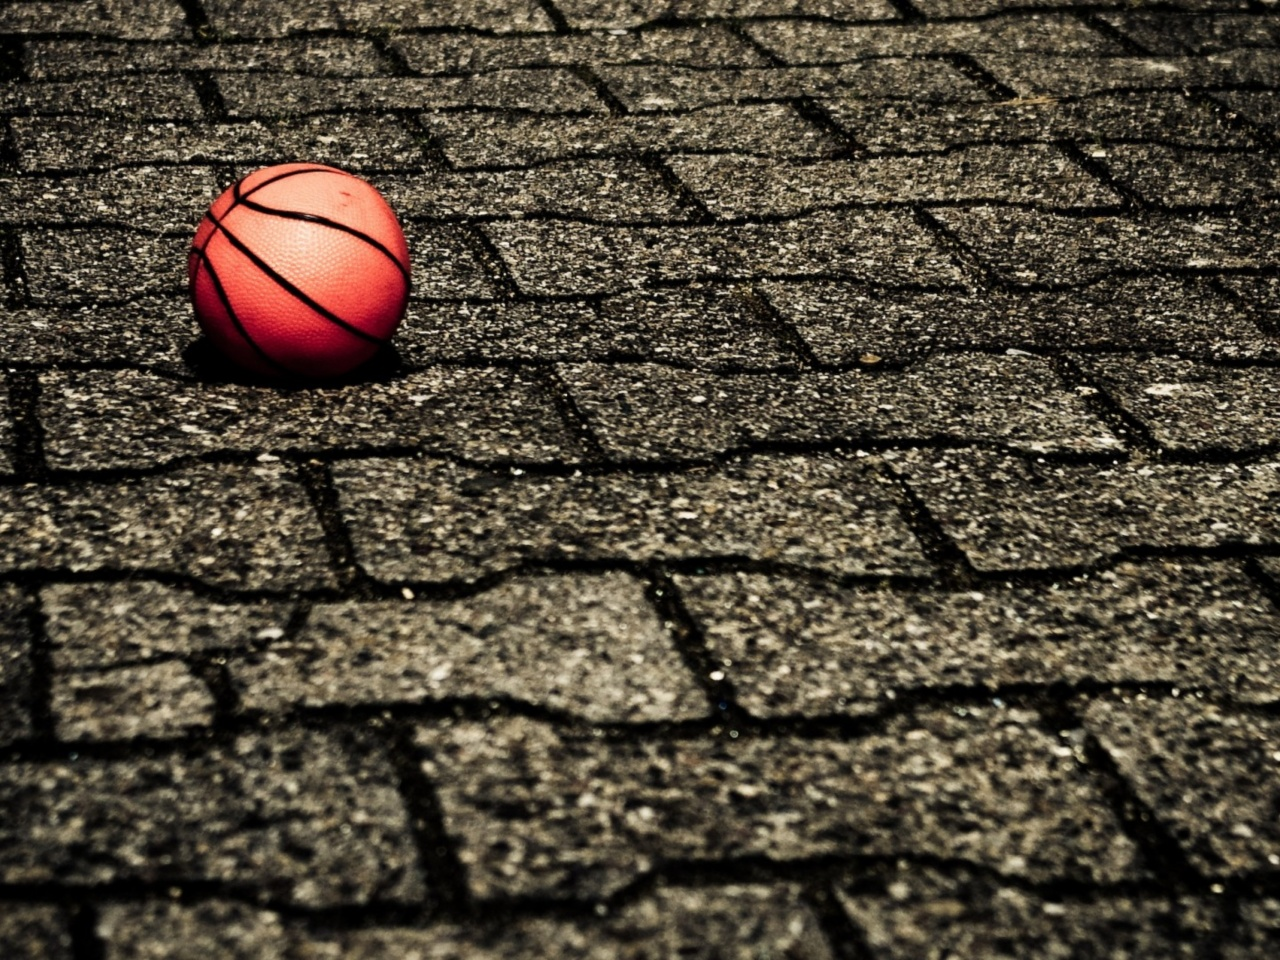 Basketball On The Street